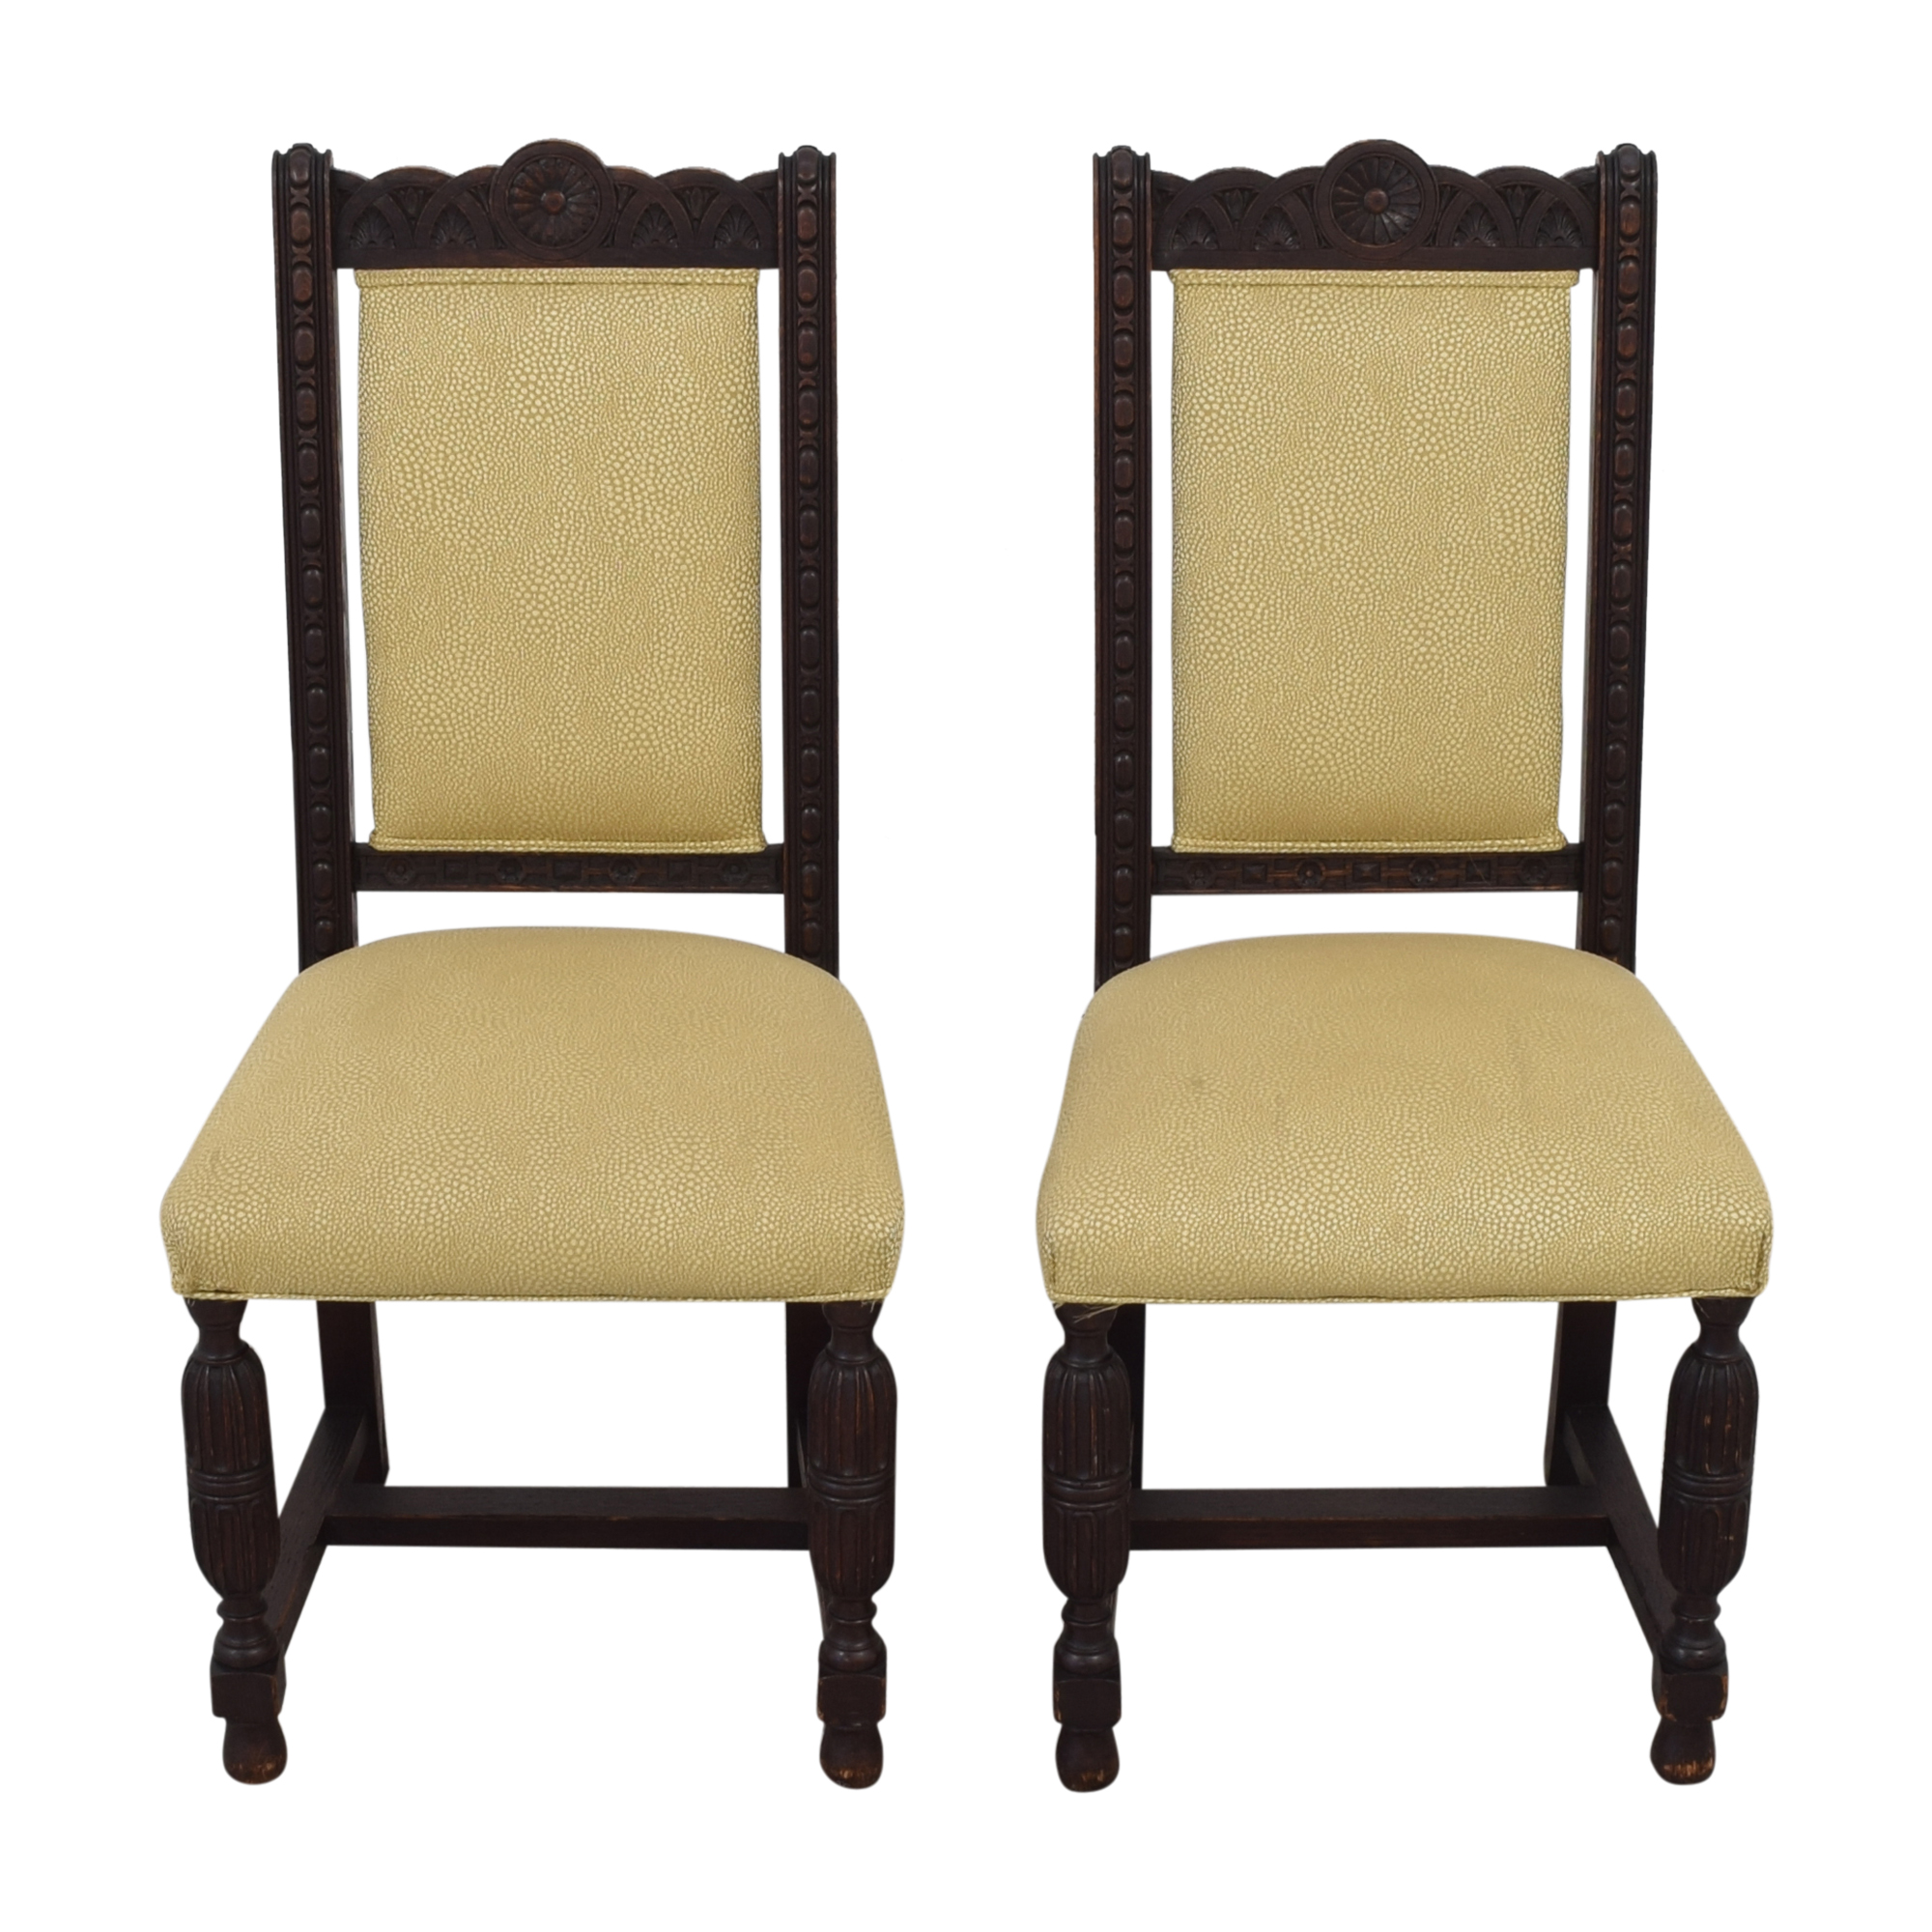 Vintage H. Lauzon Dining Chairs Chairs